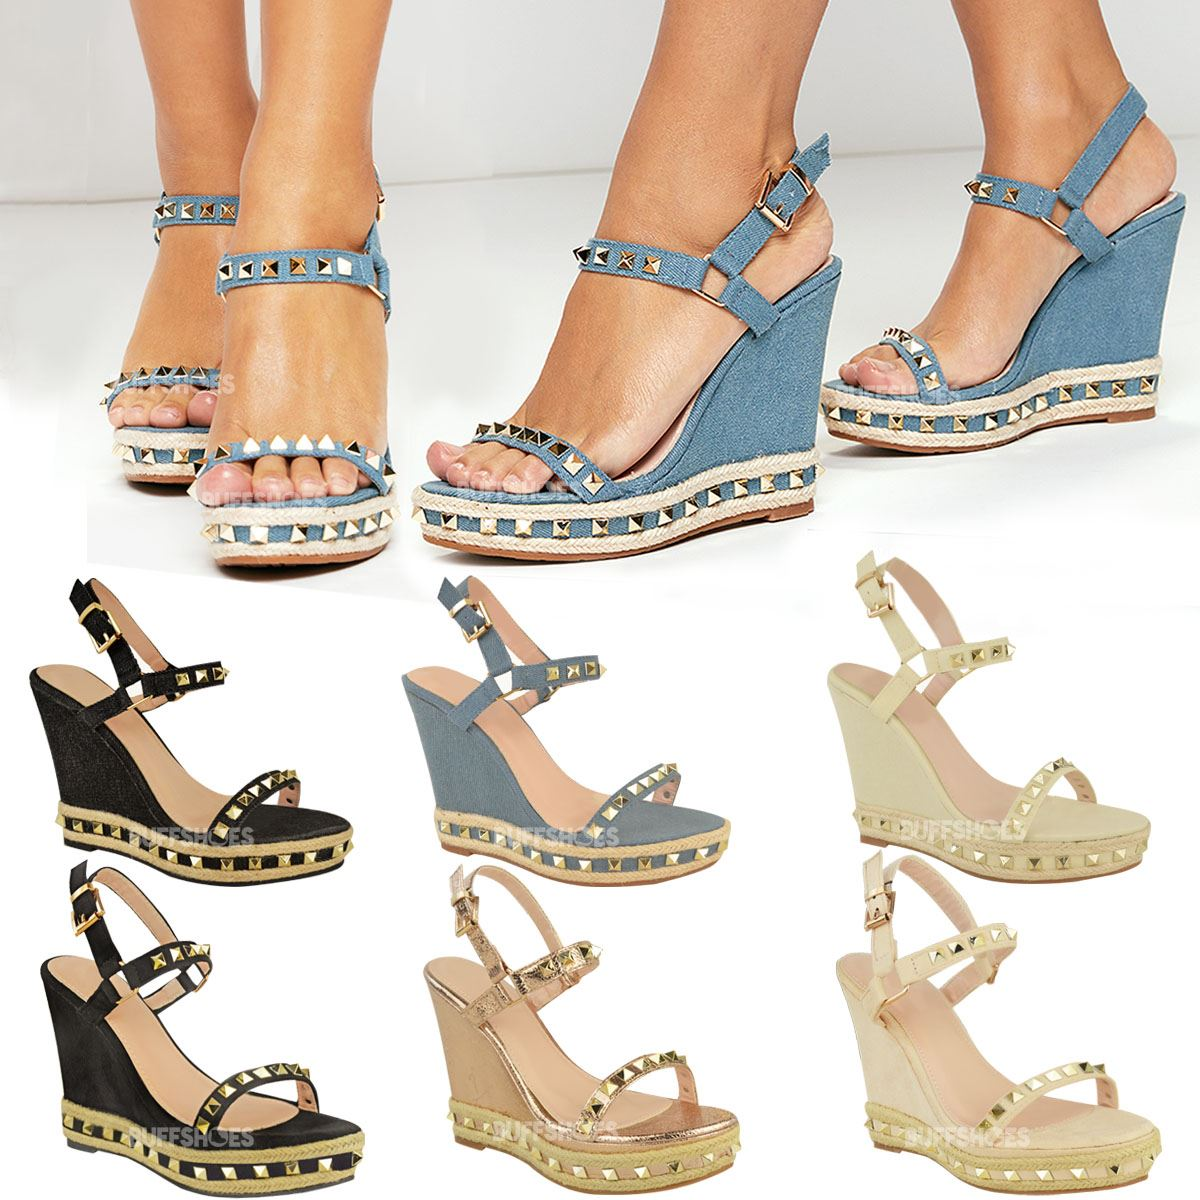 503e8e4ebc3 Details about Womens Ladies Studded Wedge Sandals Strappy Platforms Denim  Summer Shoes Size